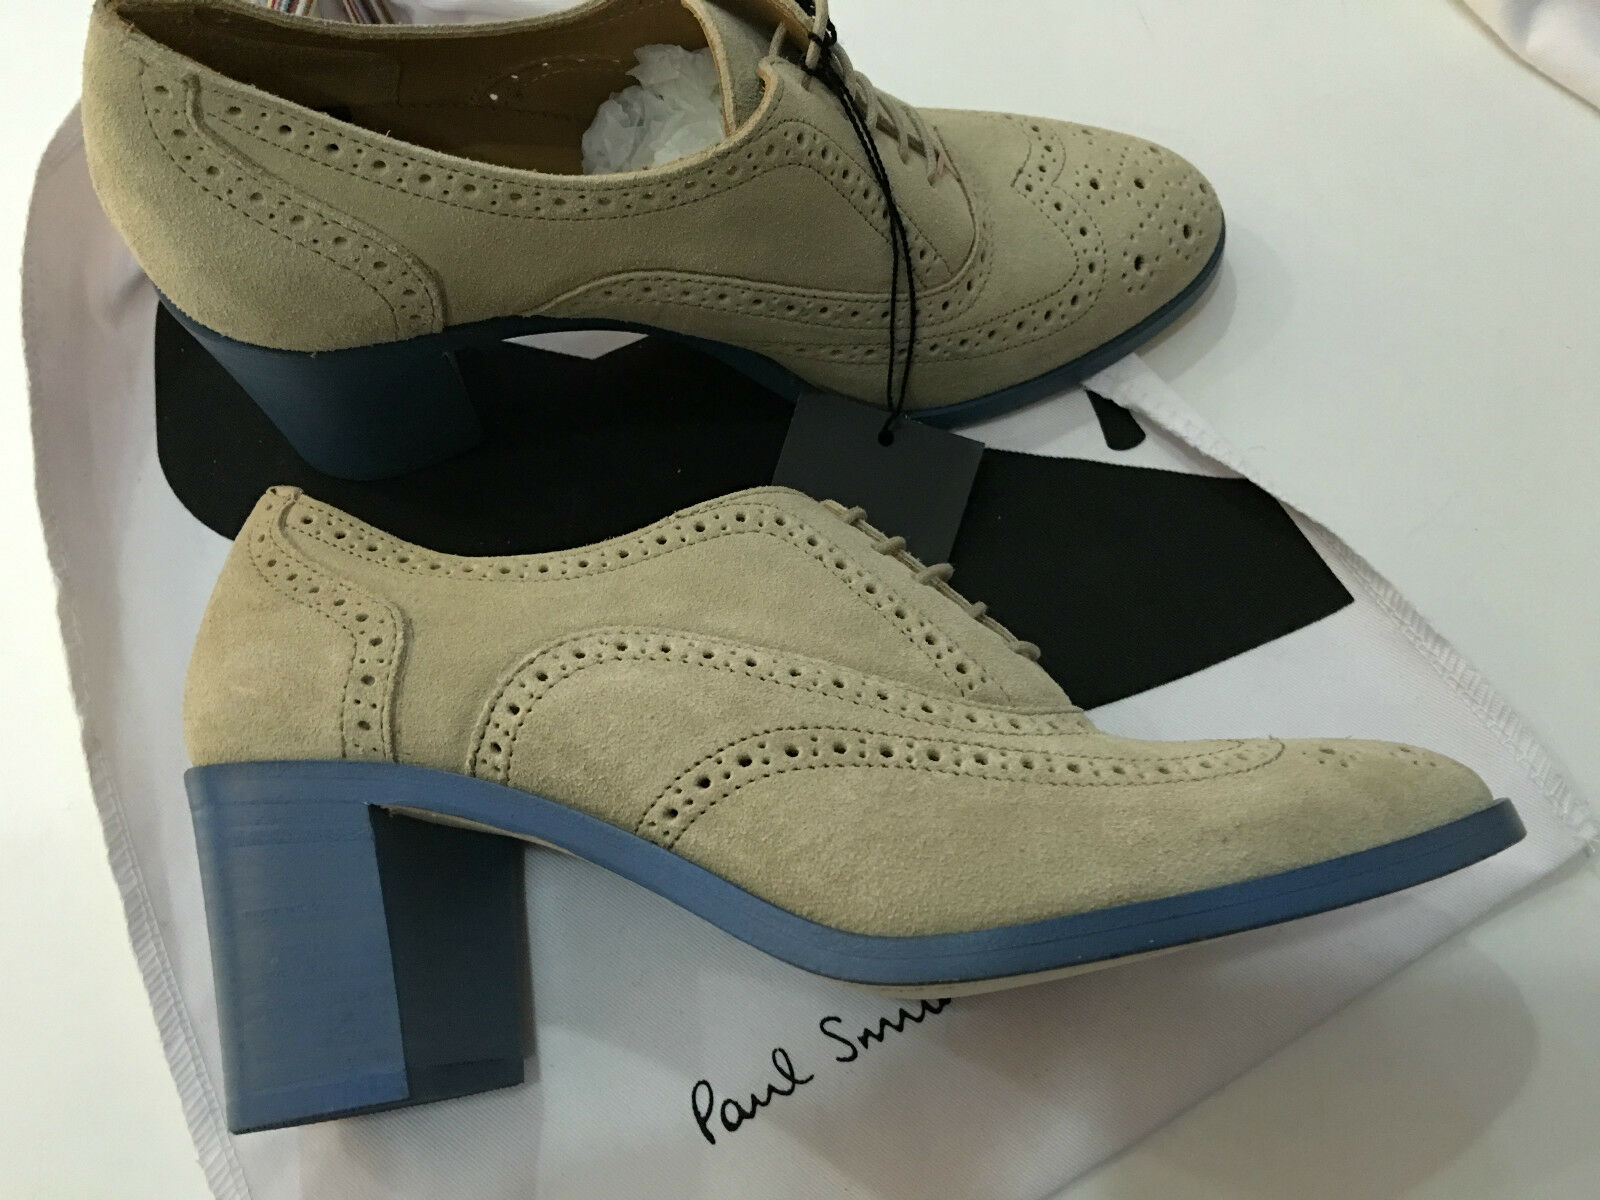 Paul Smith Womens BROGUE shoes with bluee Block Heels UK5 EU38 Made in